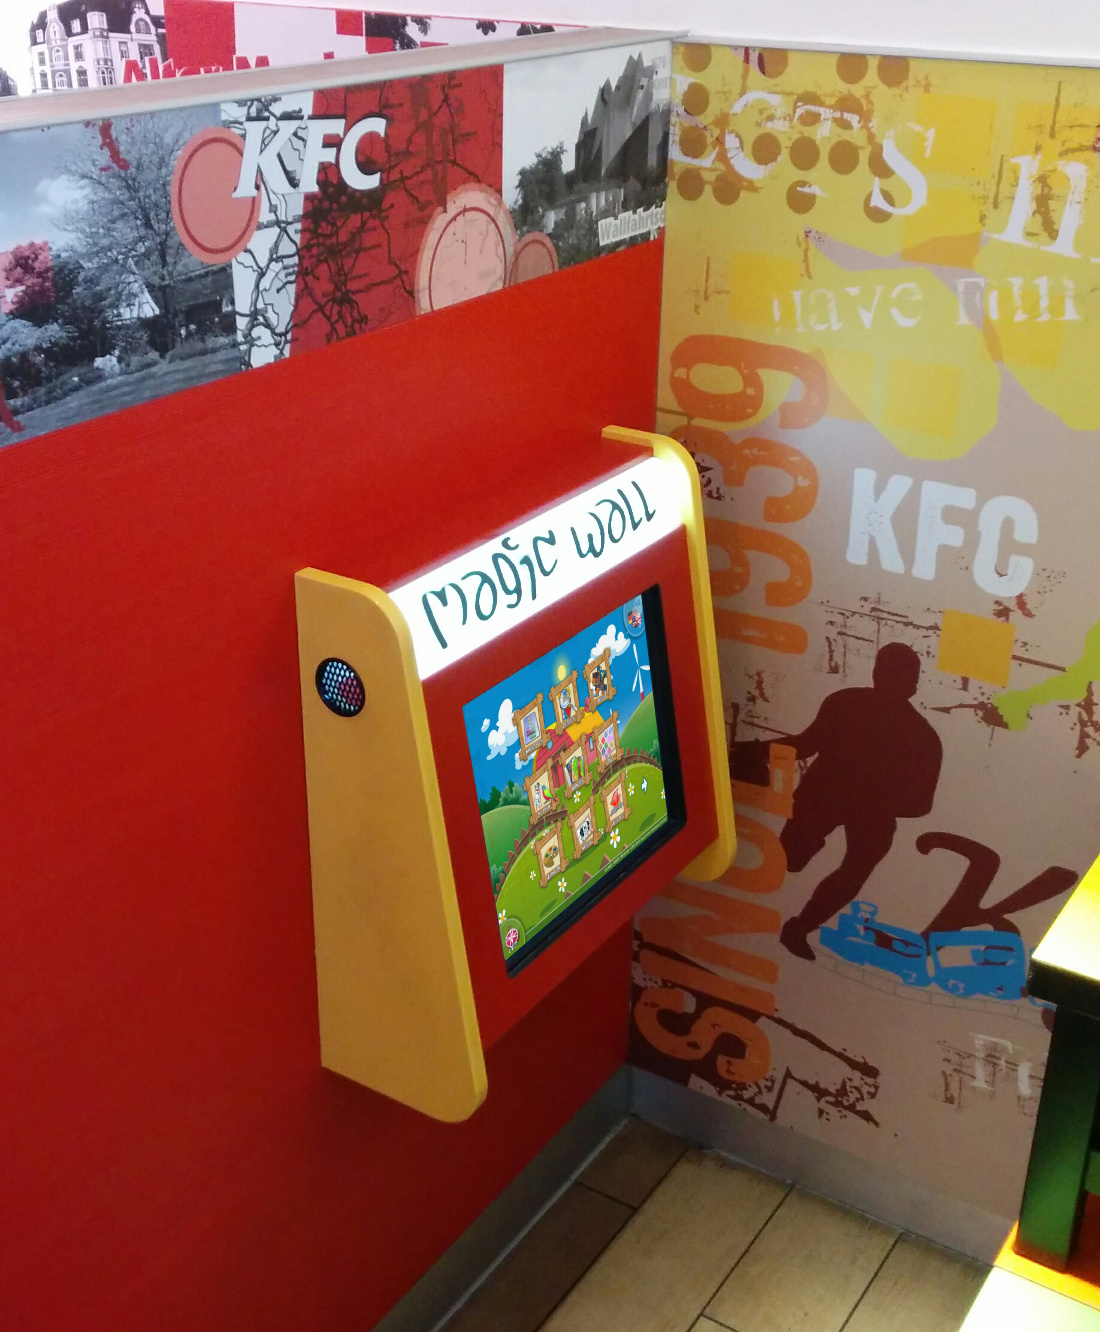 Magic Wall 17'' bei Kentucky Fried Chicken Restarurant